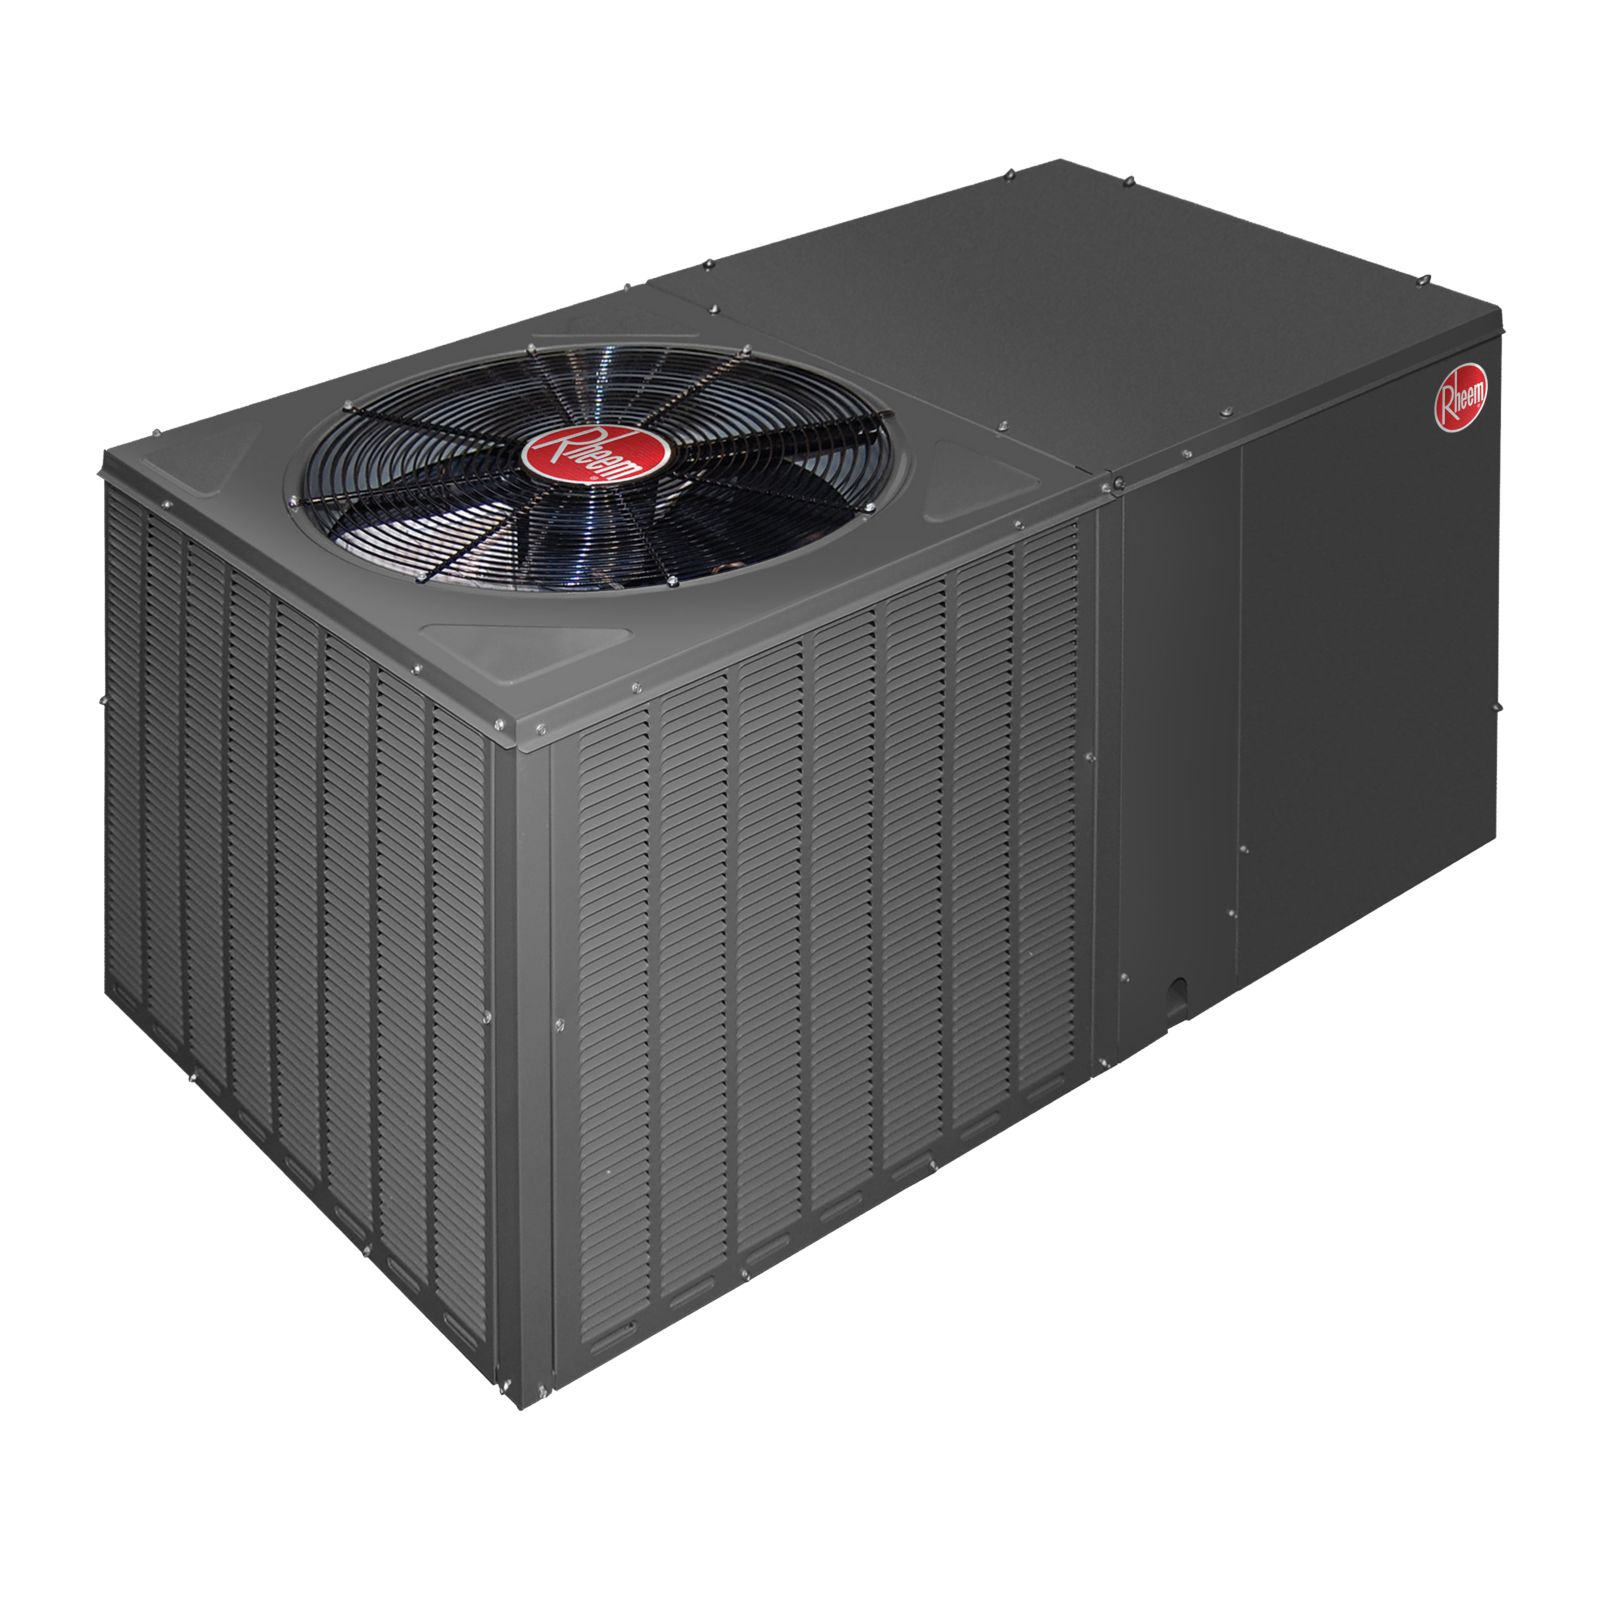 Rheem RQPM-A030JK000 - Classic 2 1/2 Ton, 14 SEER, Packaged Heat Pump With Horizontal Discharge, 208-230 V, 1 Ph, 60 Hz